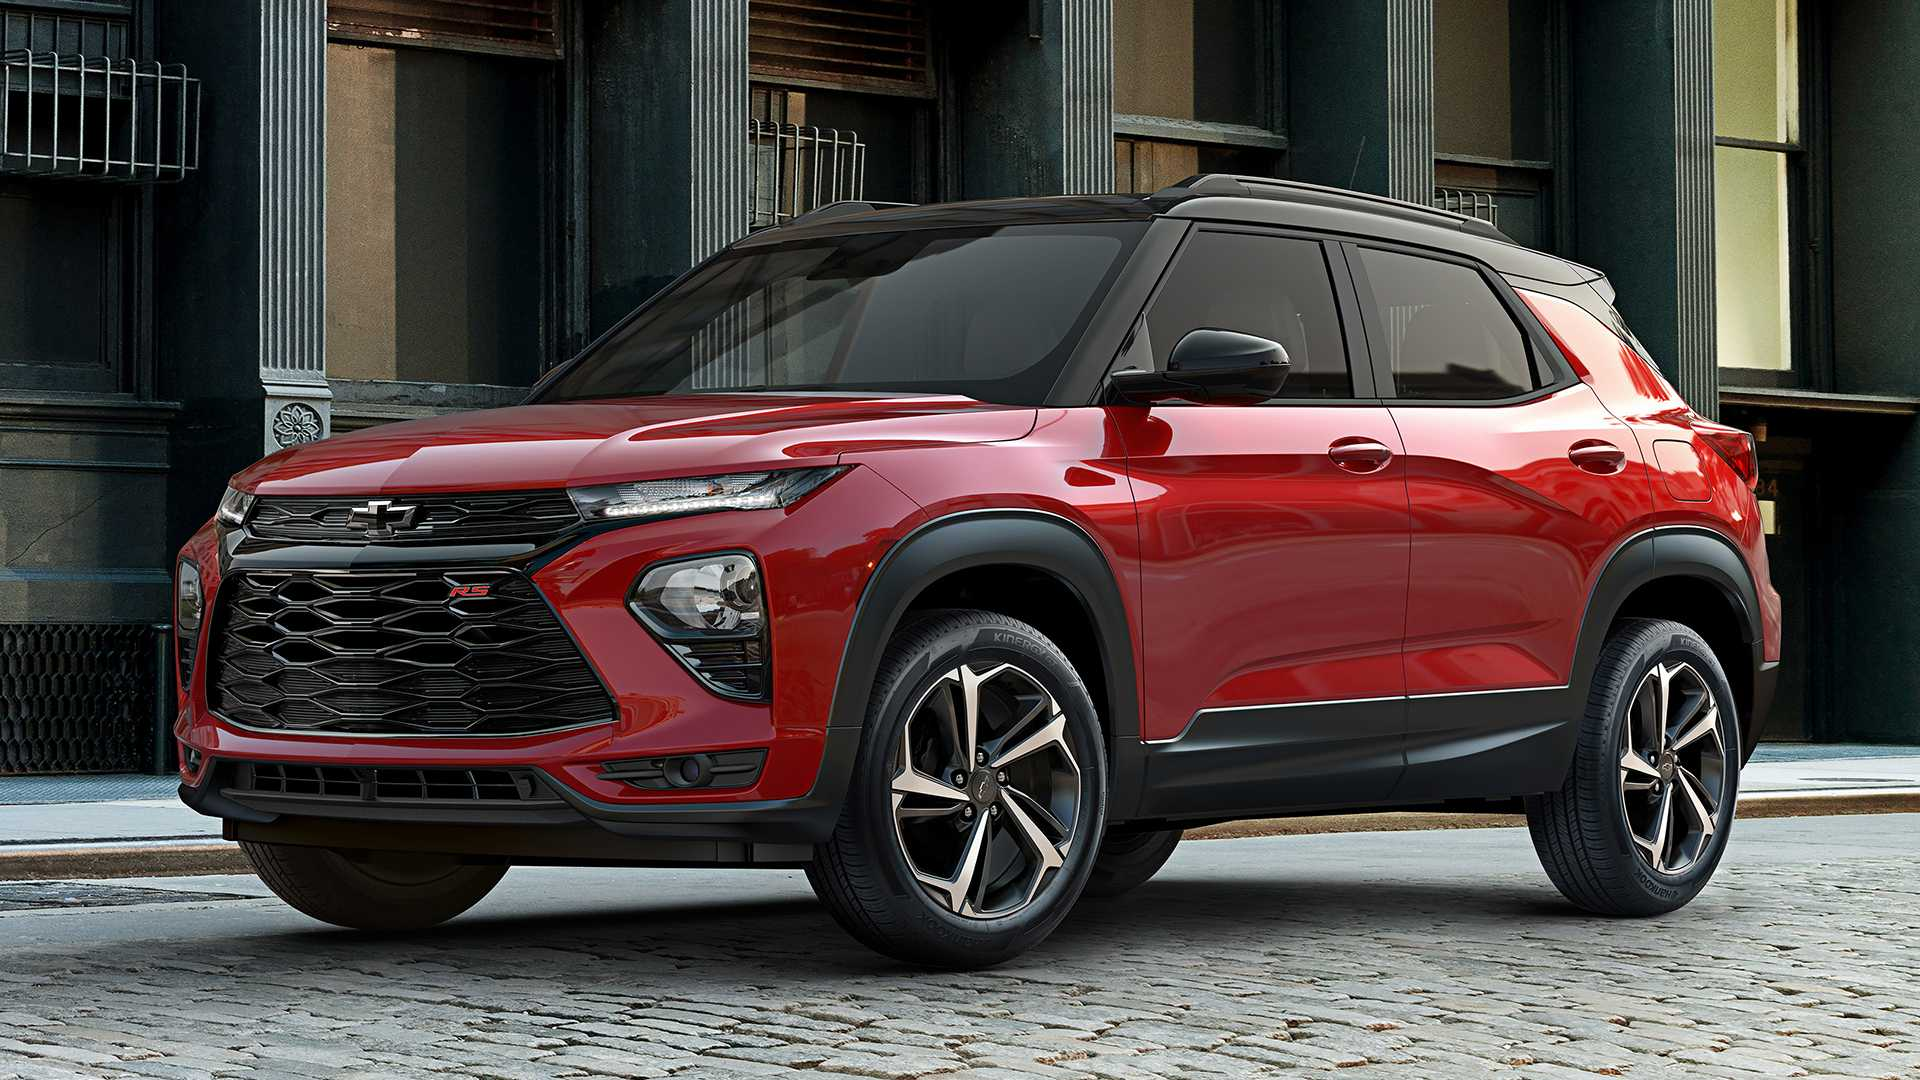 74 All New Chevrolet Blazer 2020 Ss With 500Hp Price And Review